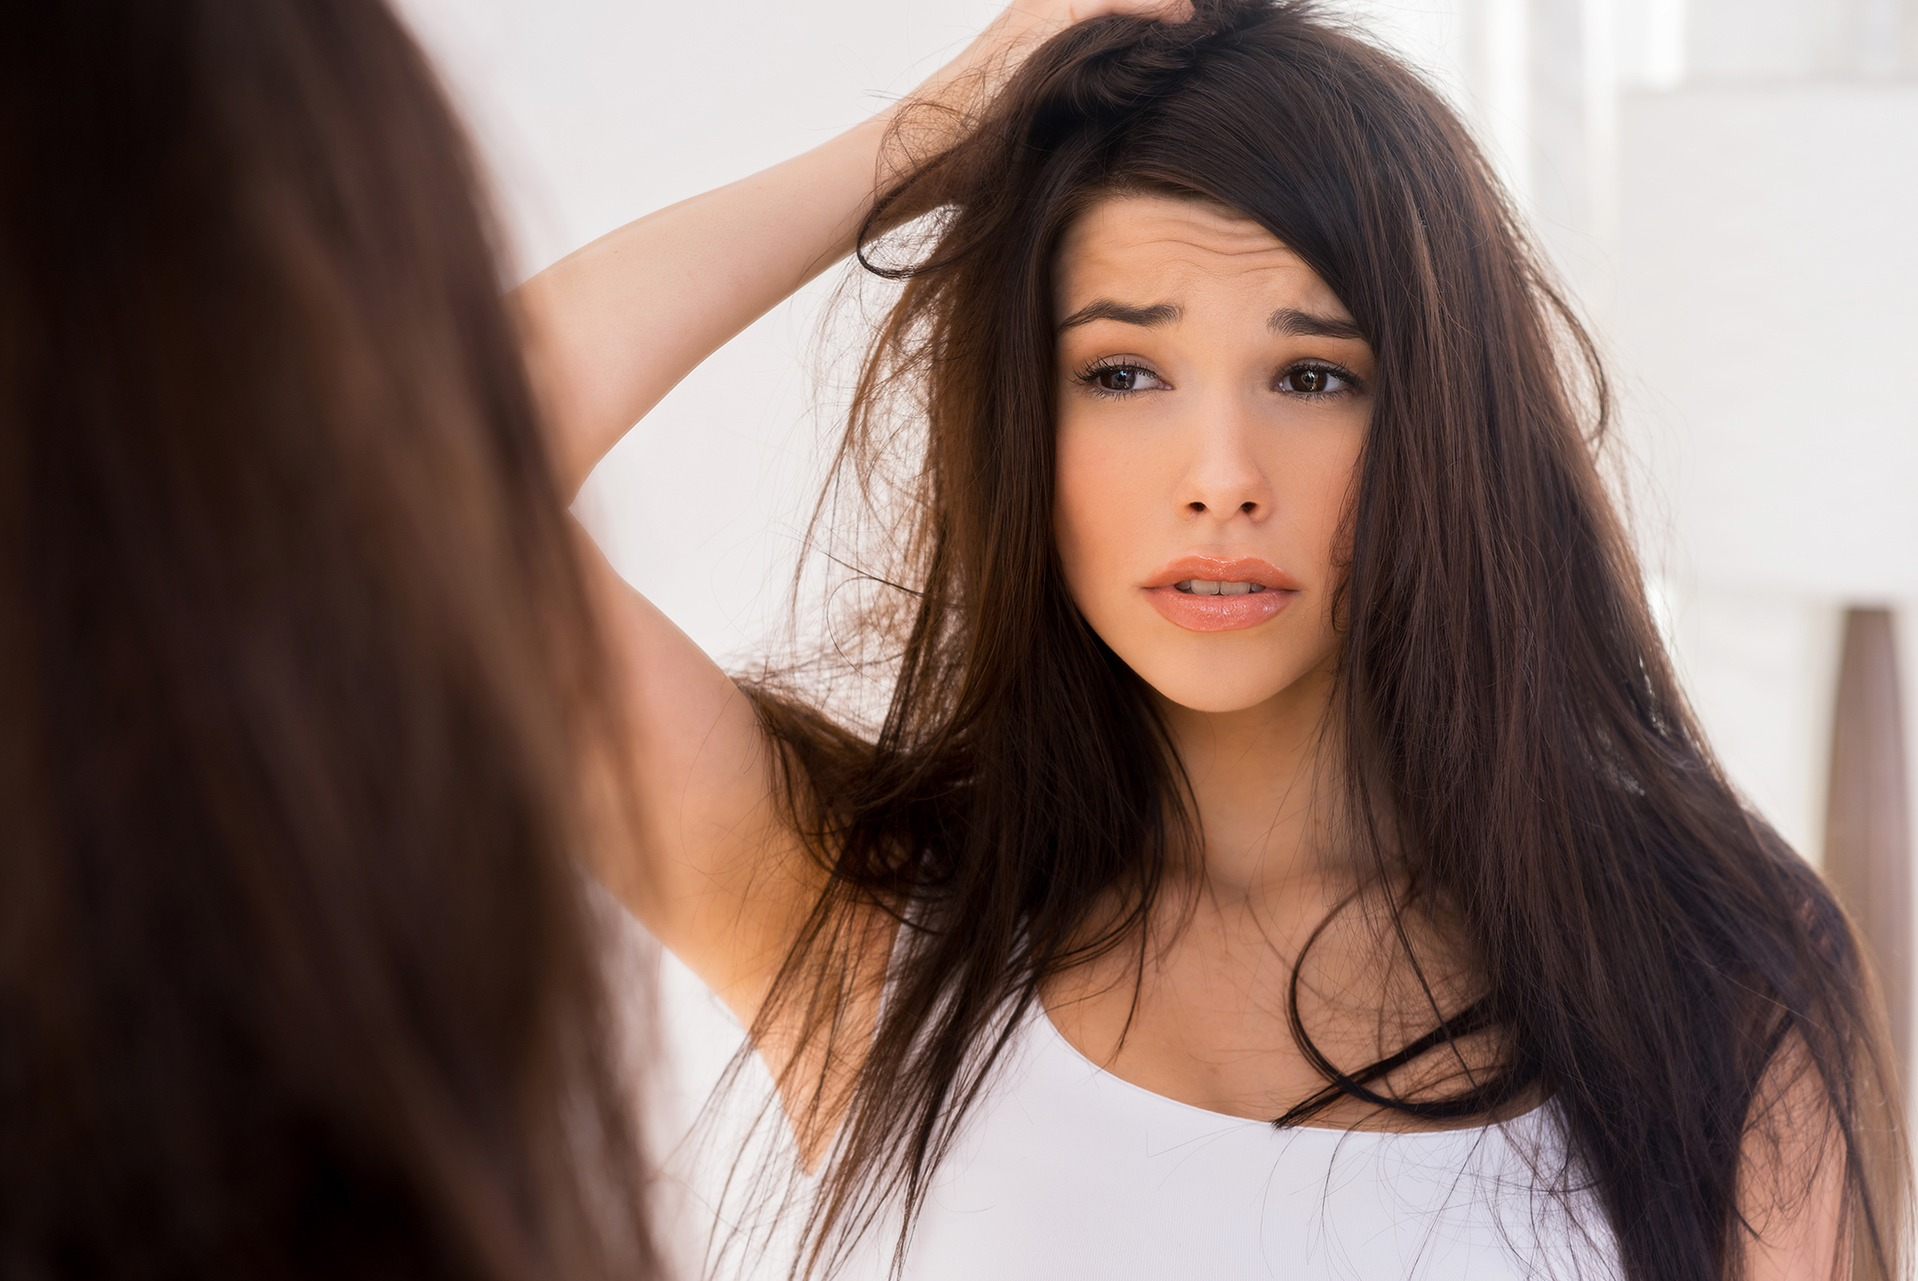 How to help dry hair restore its good-looks? Home remedies for dry hair